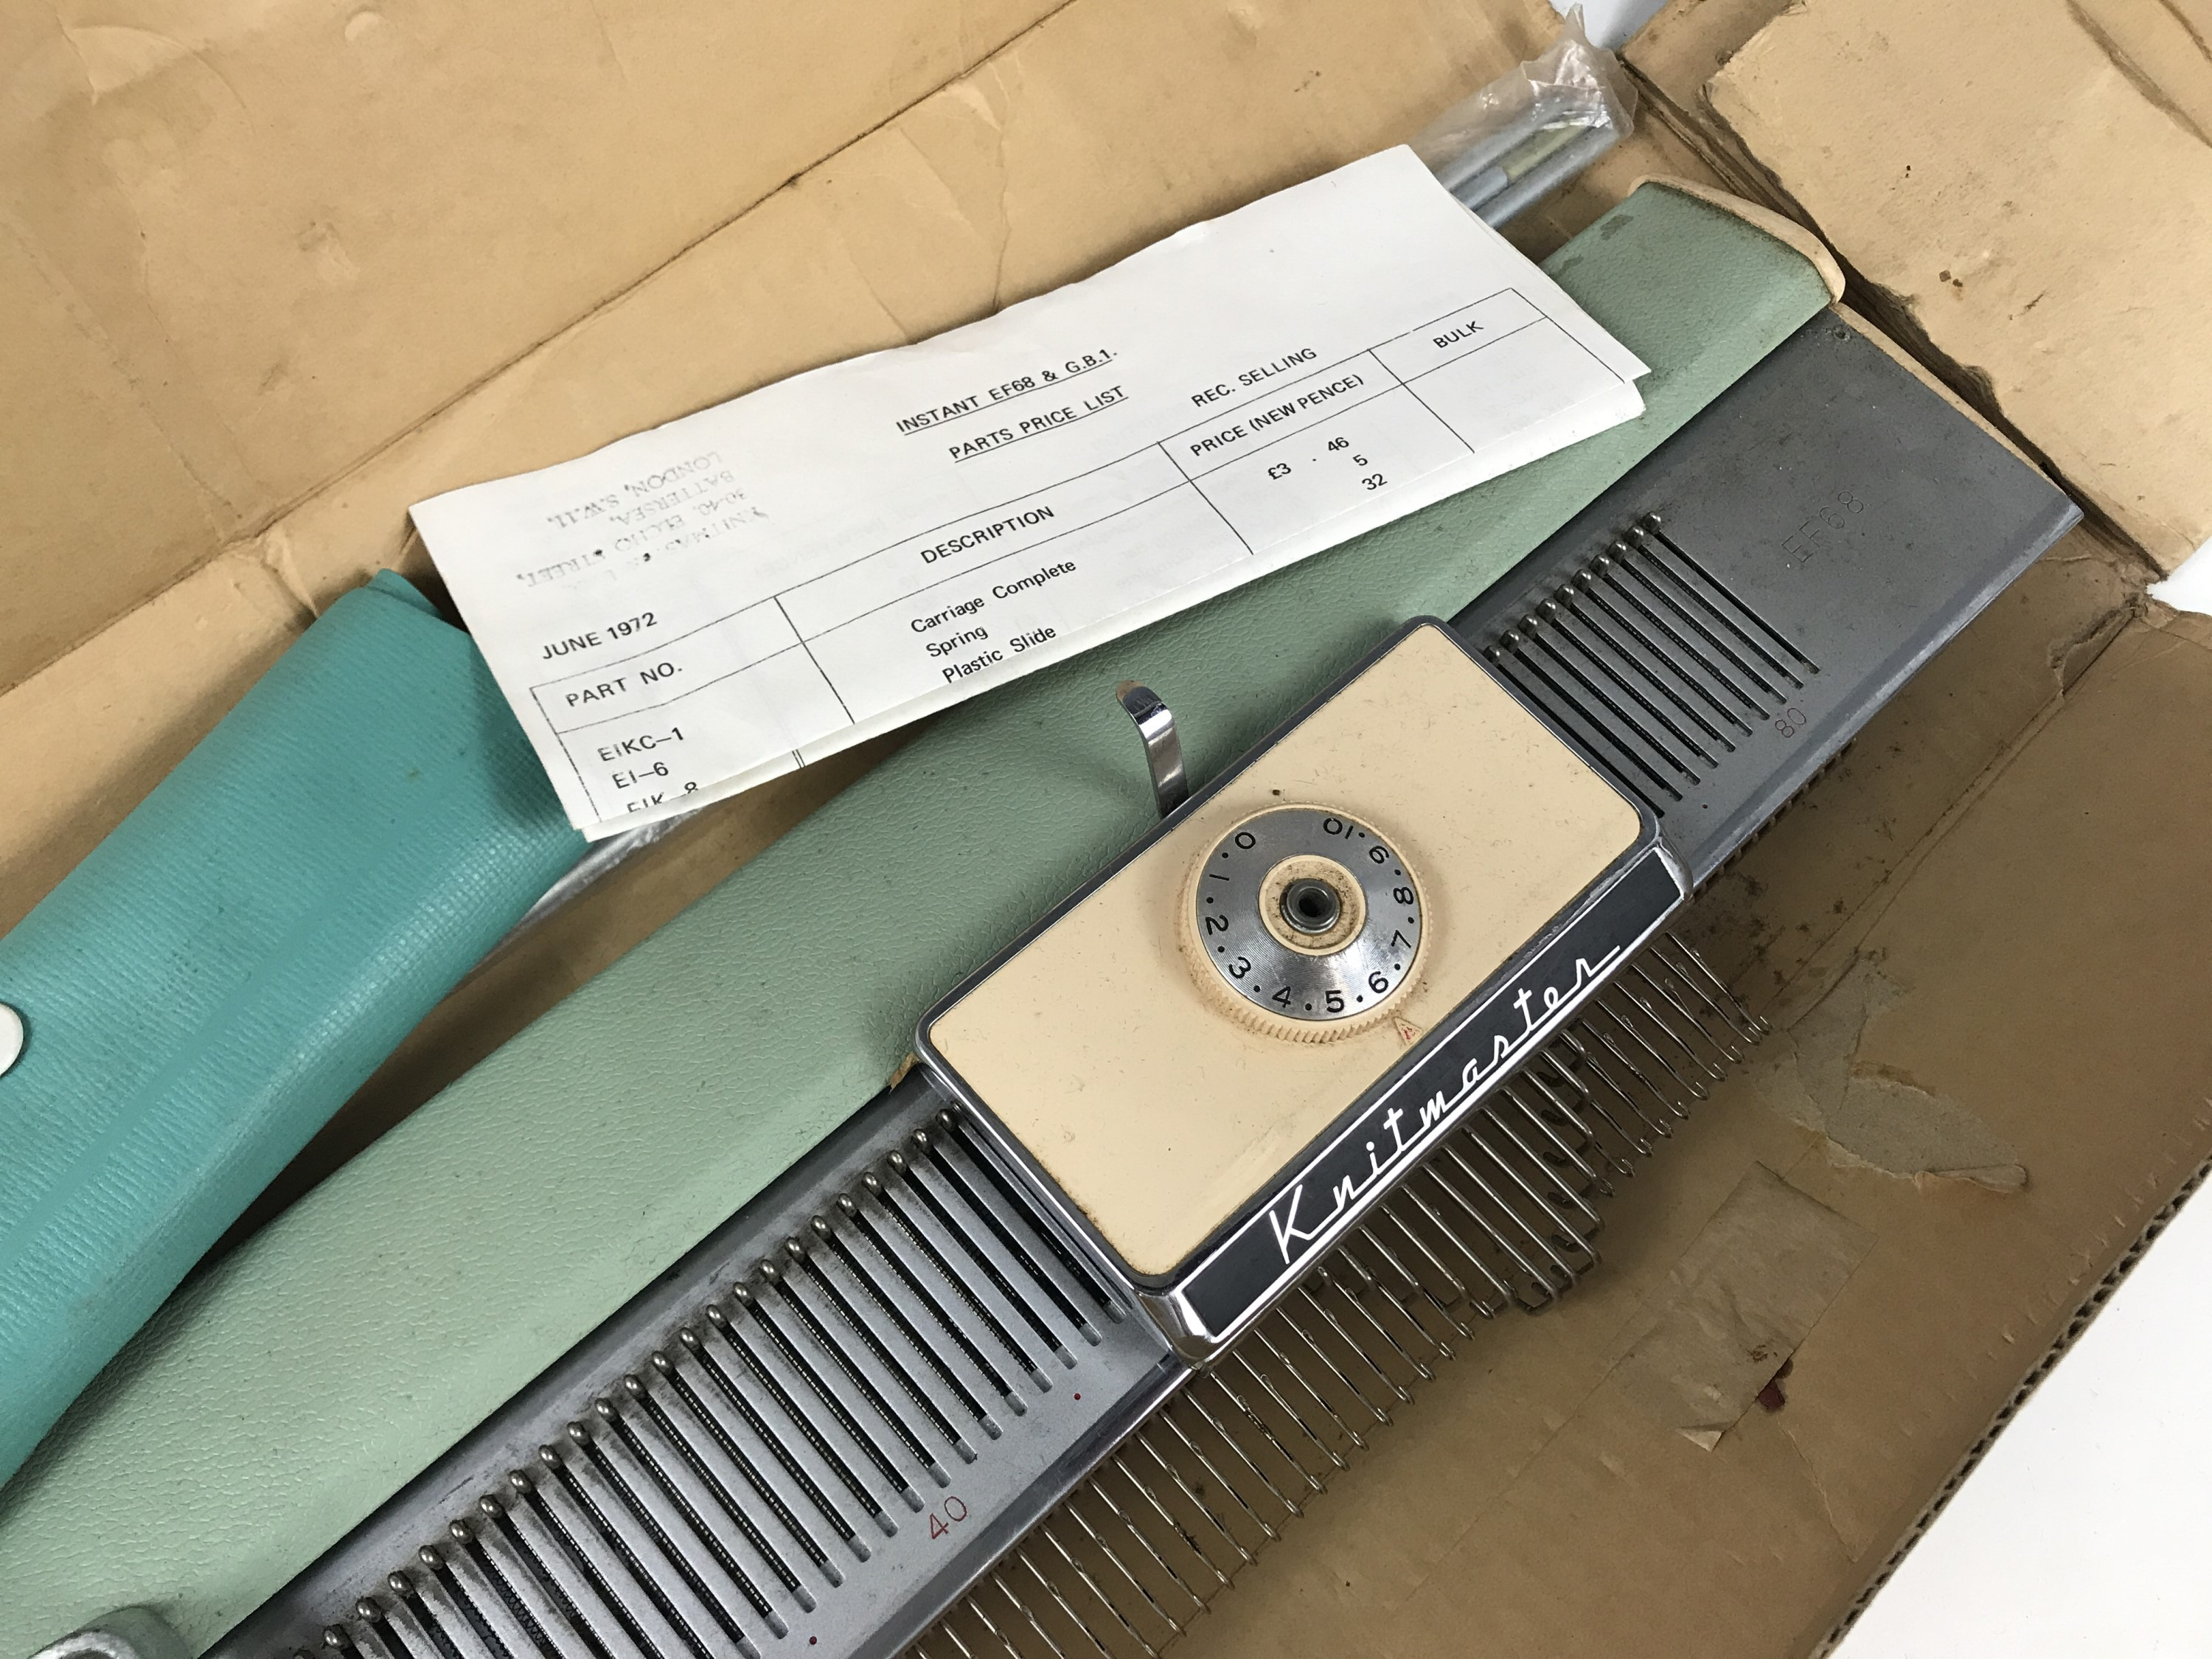 Lot 32 - A vintage Knitmaster knitting machine, in original carton together with price list